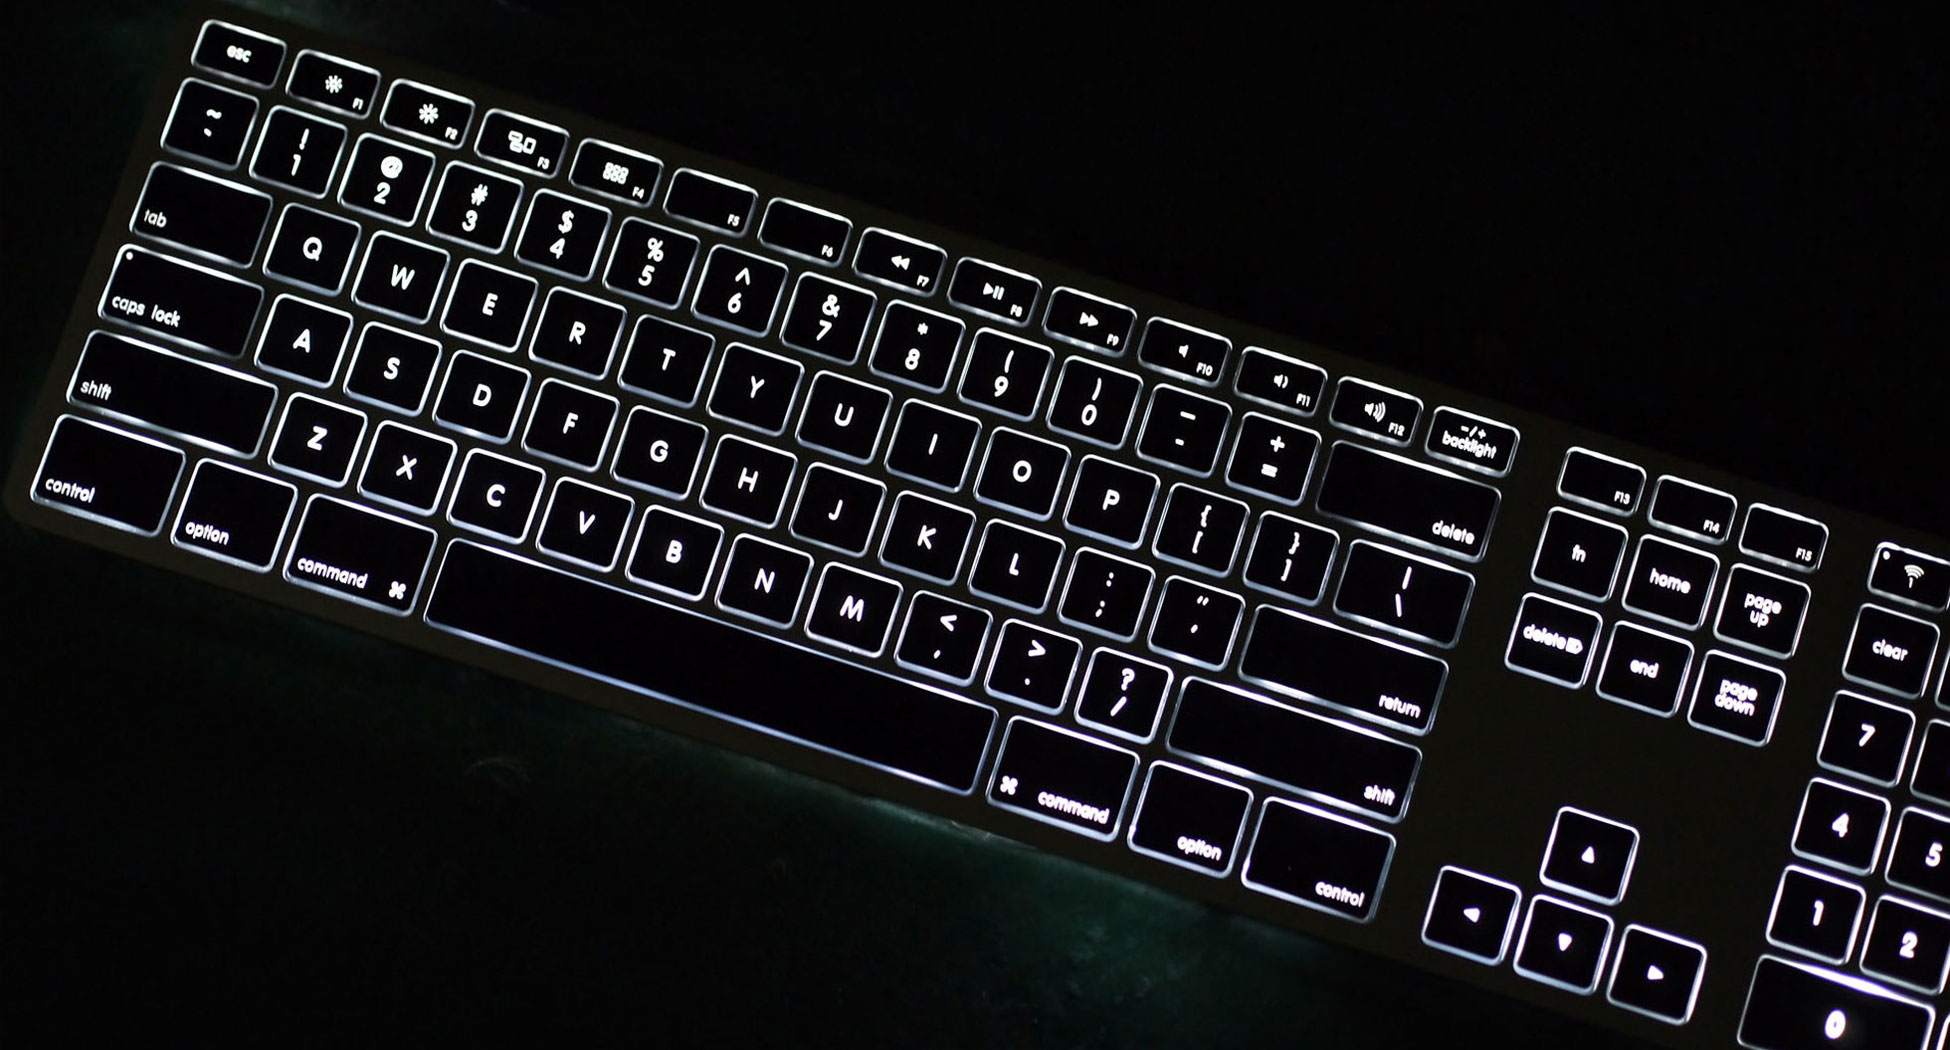 df5fc2c7fff Wireless Aluminum Keyboard with Backlight - Completely Dark with  Backlighting On